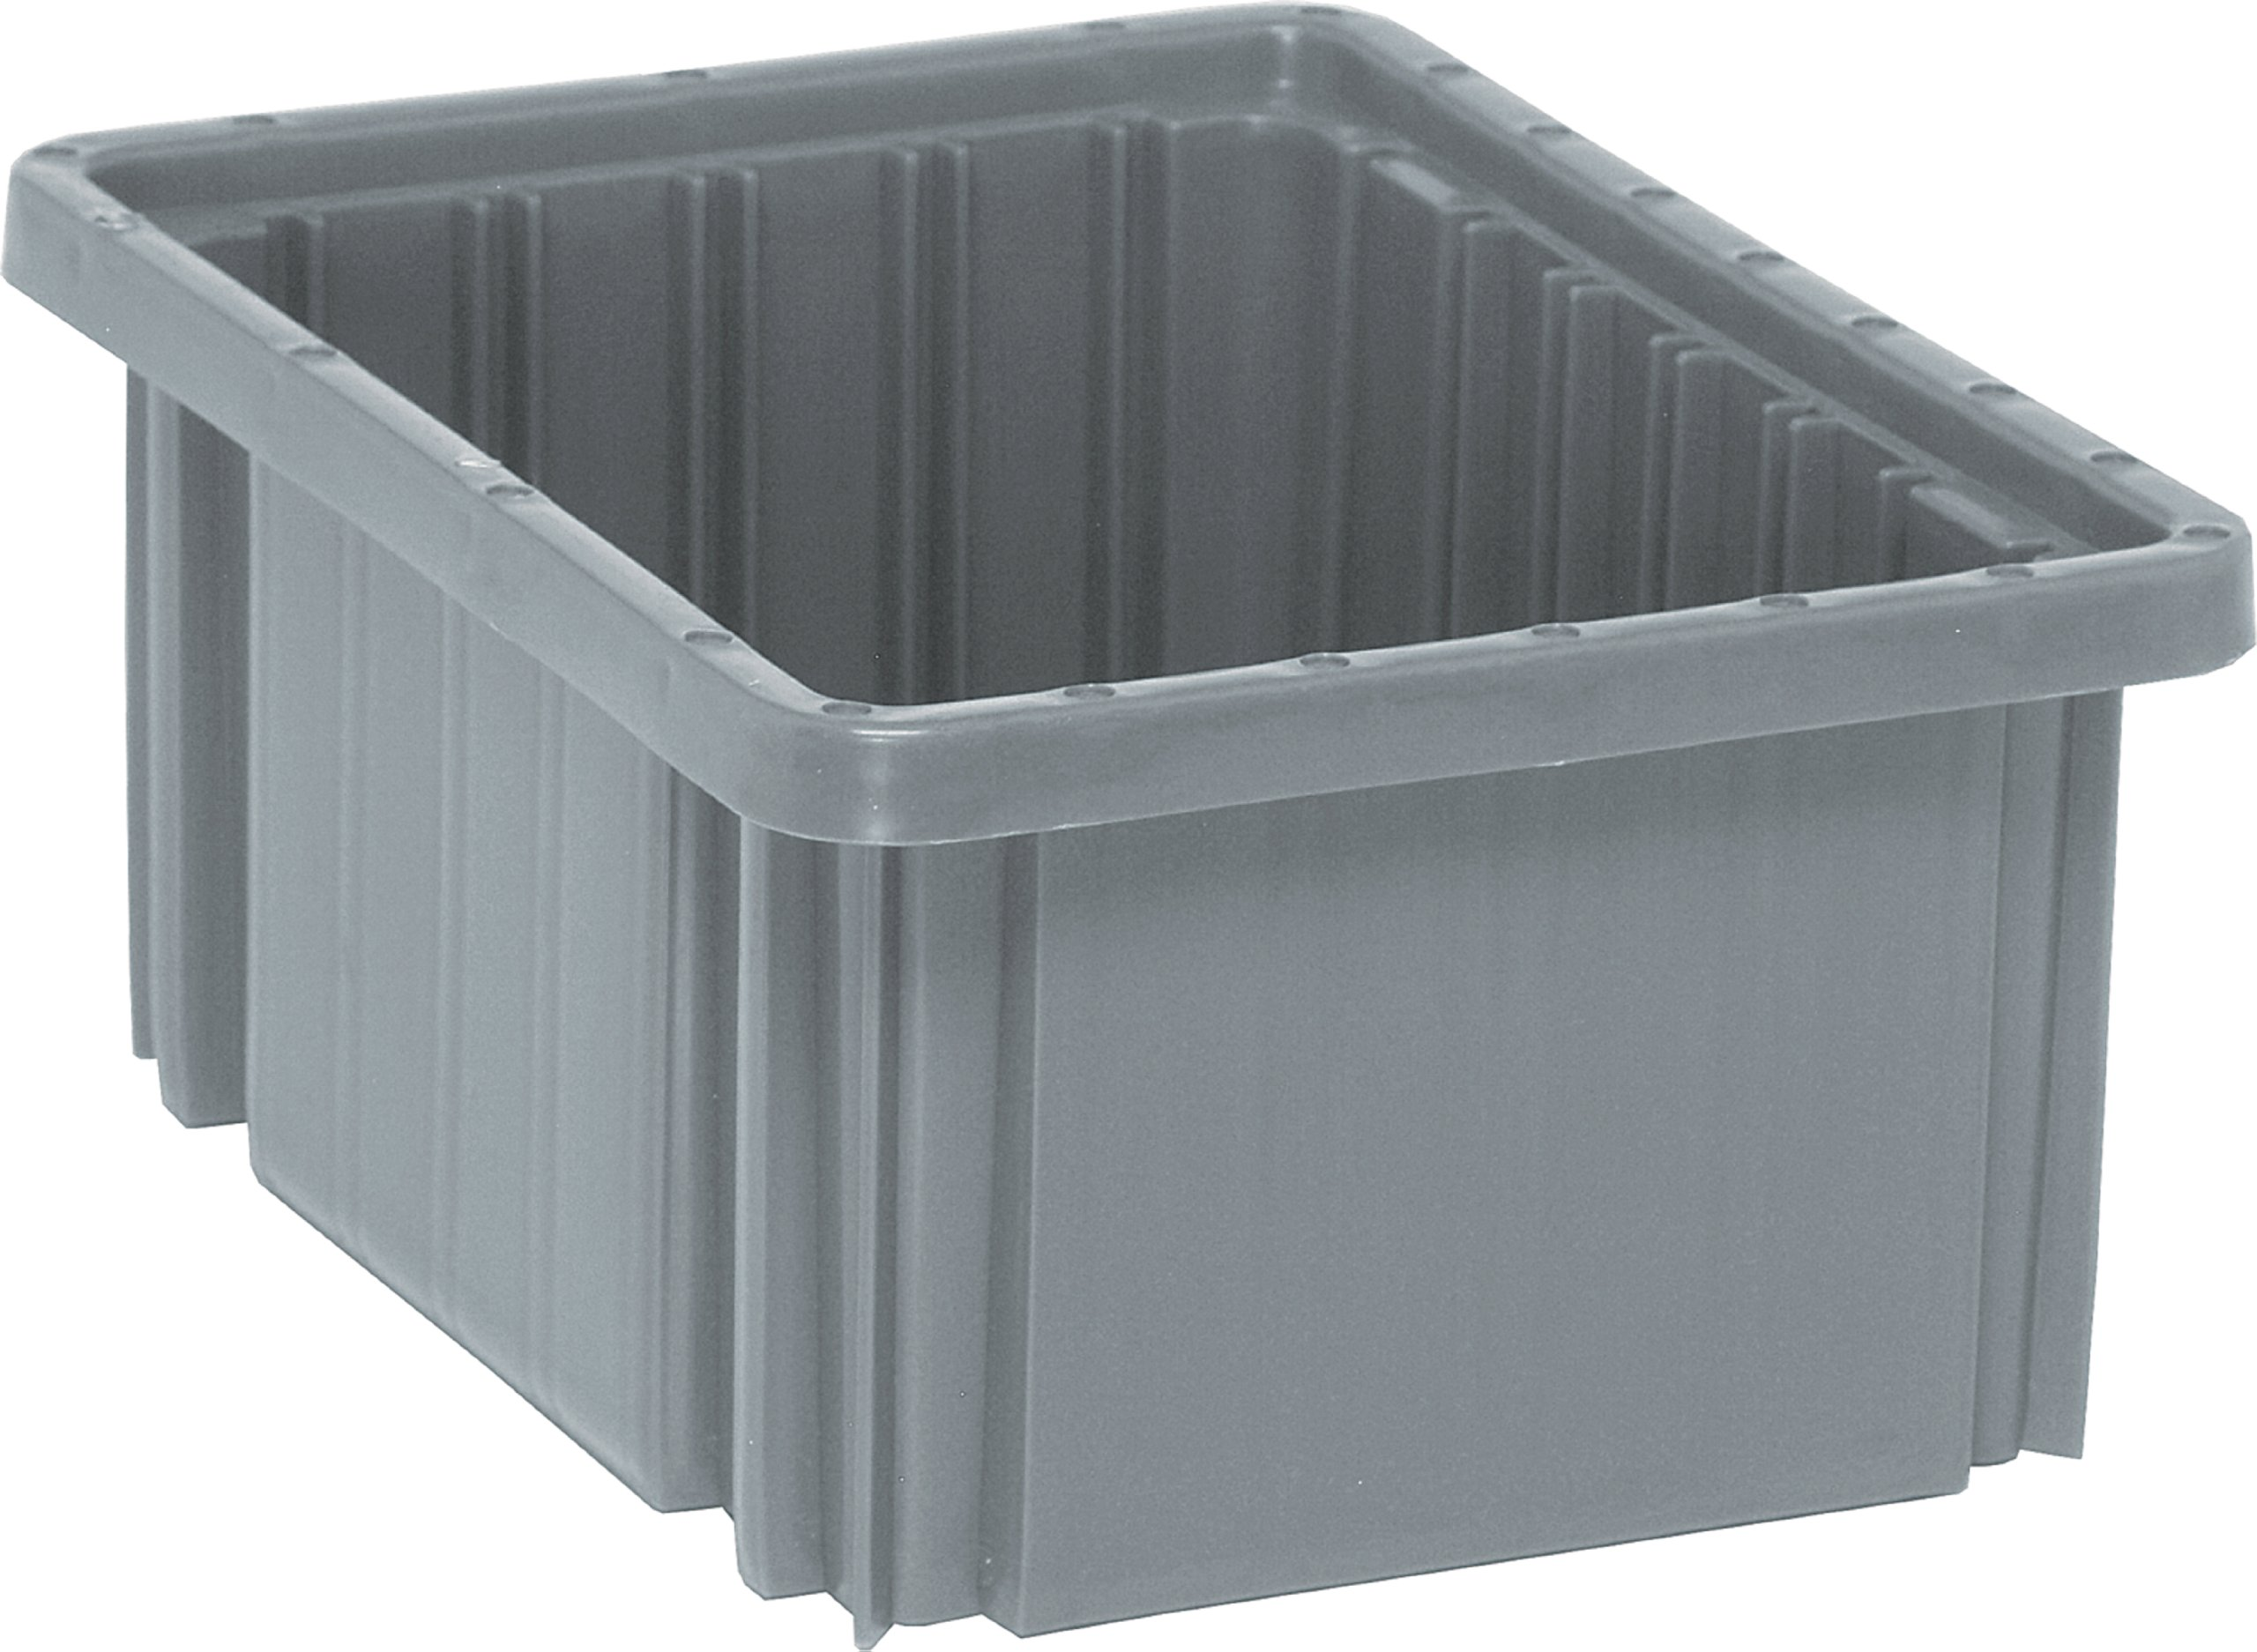 Quantum Storage Systems DG91050GY Dividable Grid Container 10-7/8-Inch Long by 8-1/4-Inch Wide by 5-Inch High, Gray, 20-Pack